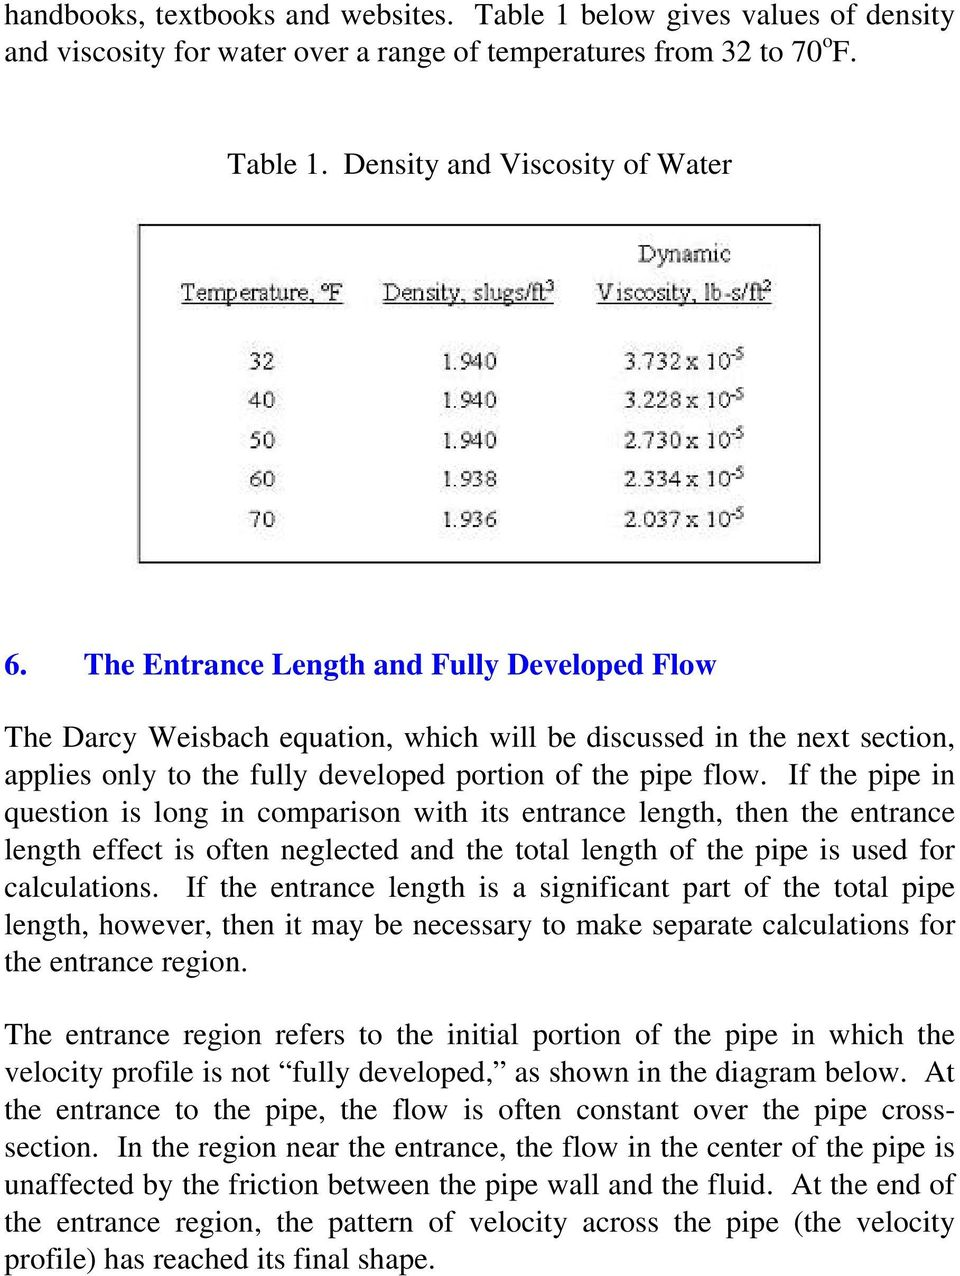 If the pipe in question is long in comparison with its entrance length, then the entrance length effect is often neglected and the total length of the pipe is used for calculations.